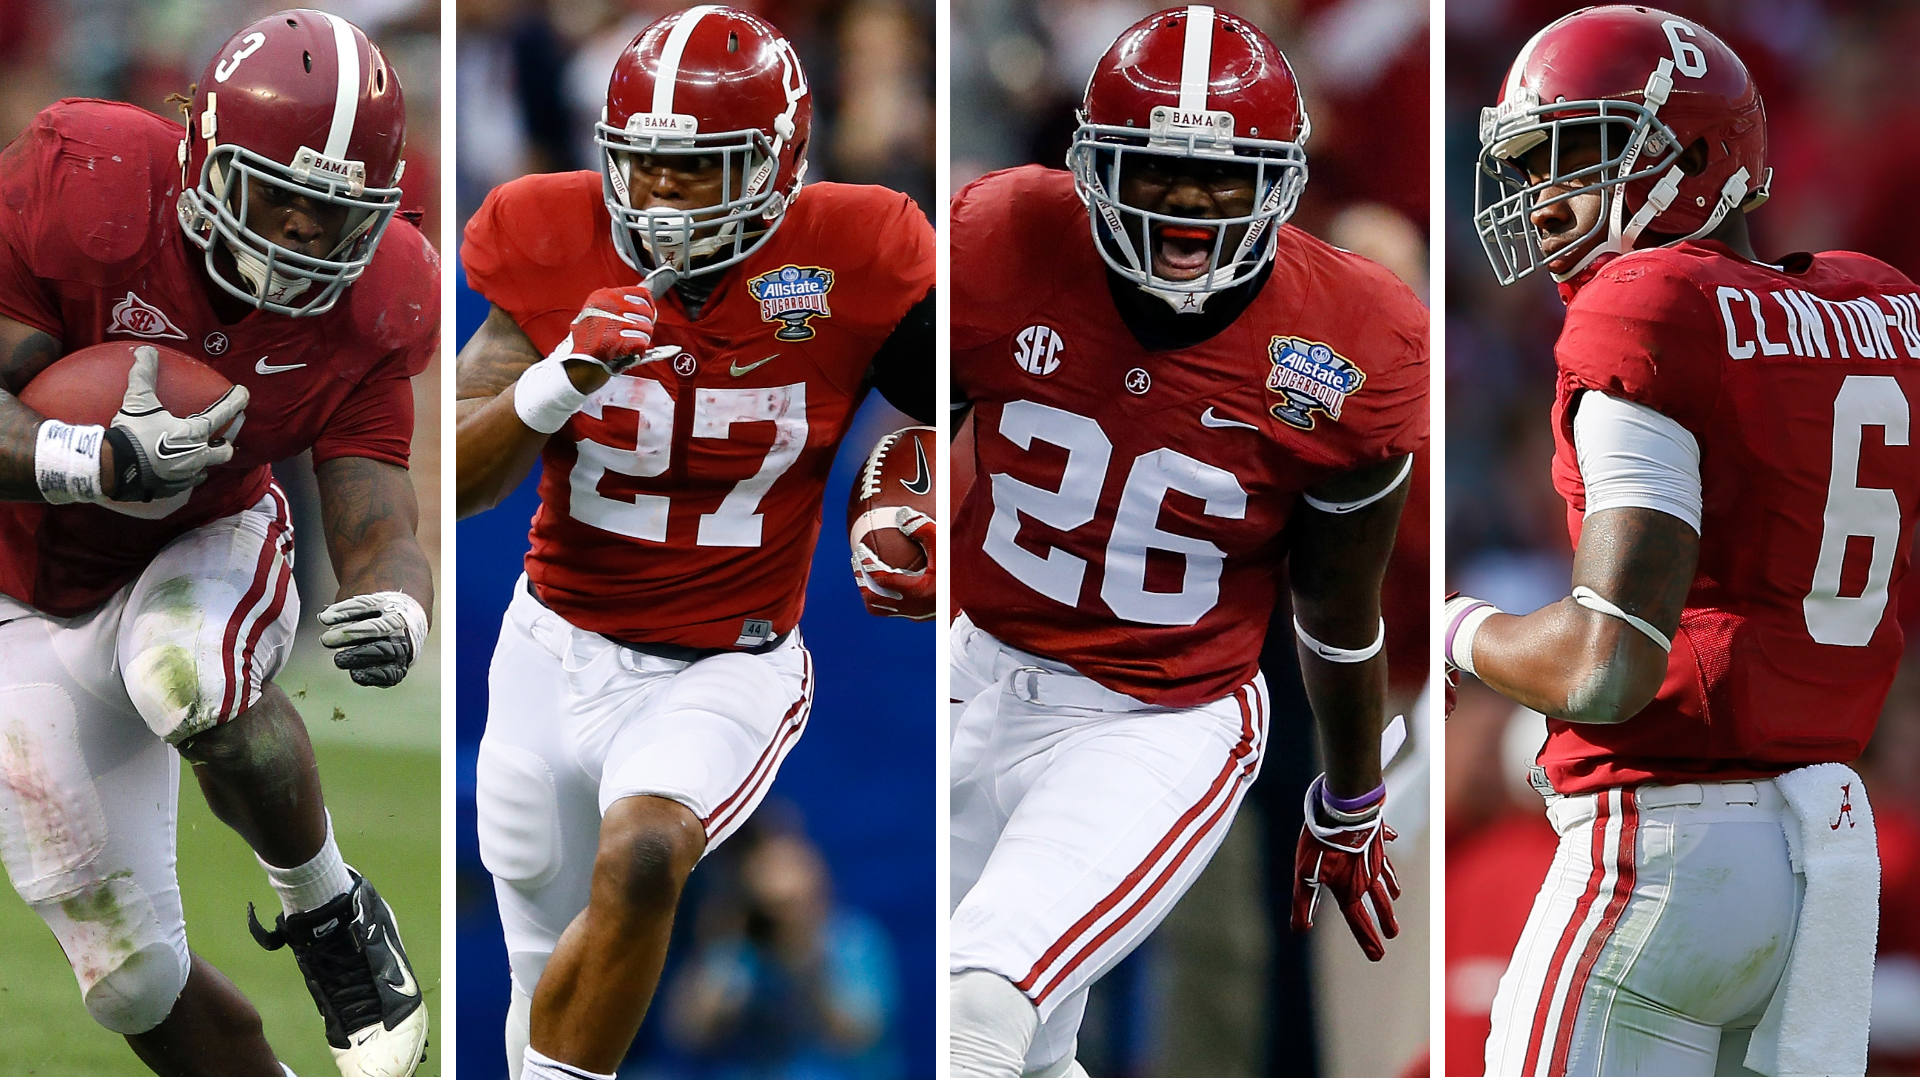 Bama-recruits-FTR-010315-getty